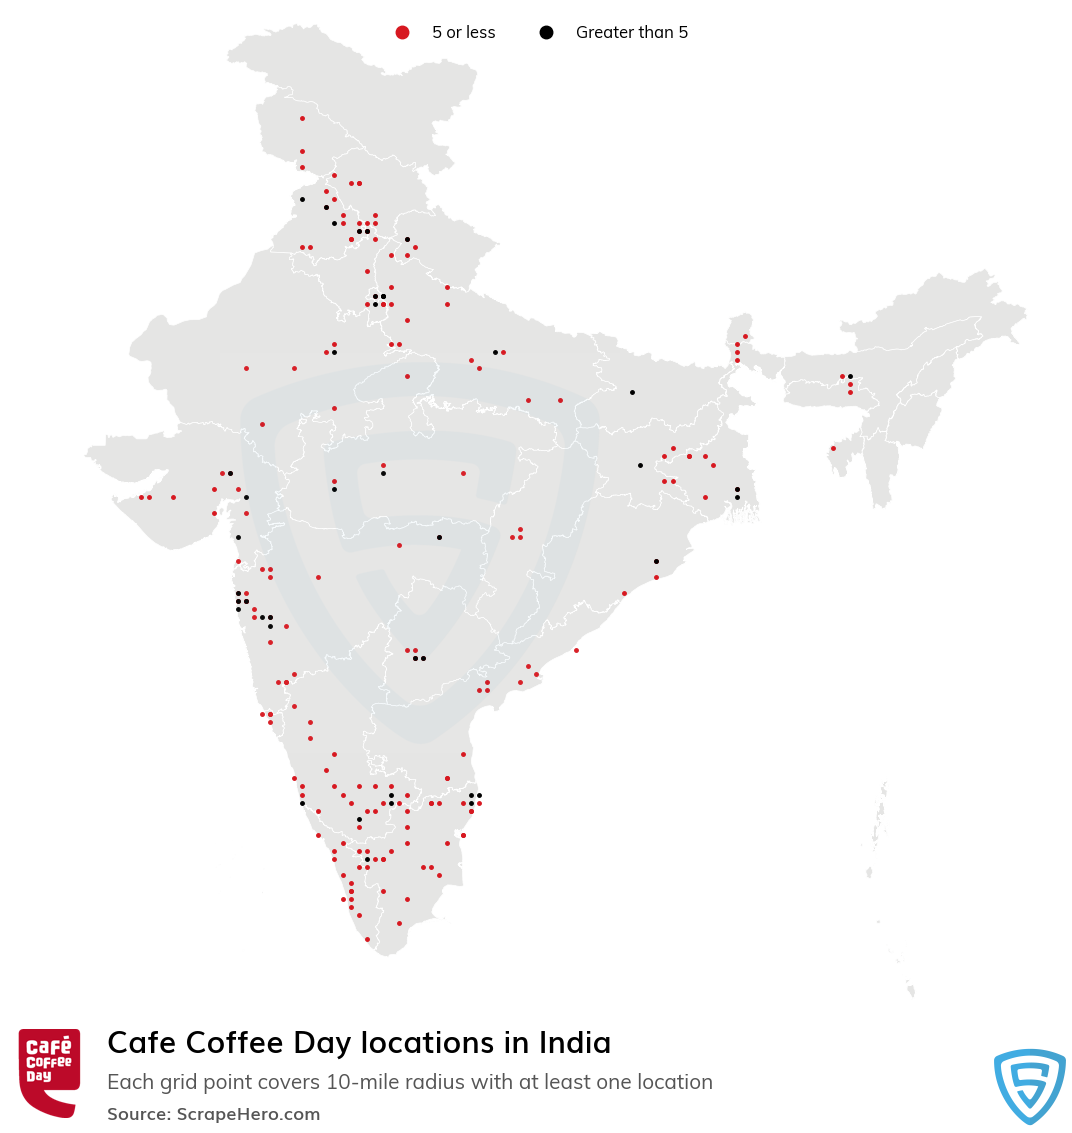 Cafe Coffee Day Store locations in India